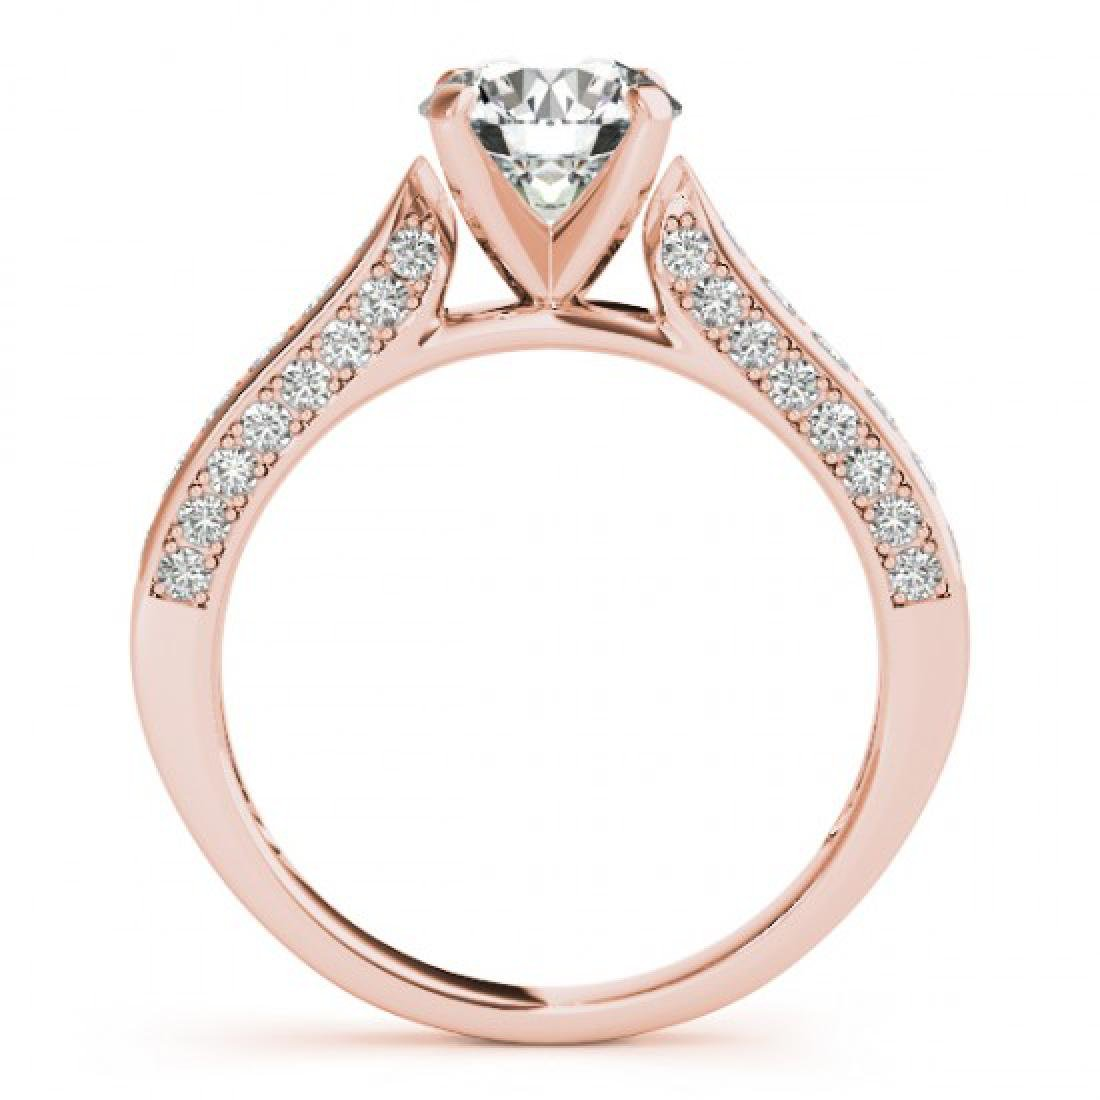 1.1 CTW Certified VS/SI Diamond Solitaire Ring 14K Rose - 2